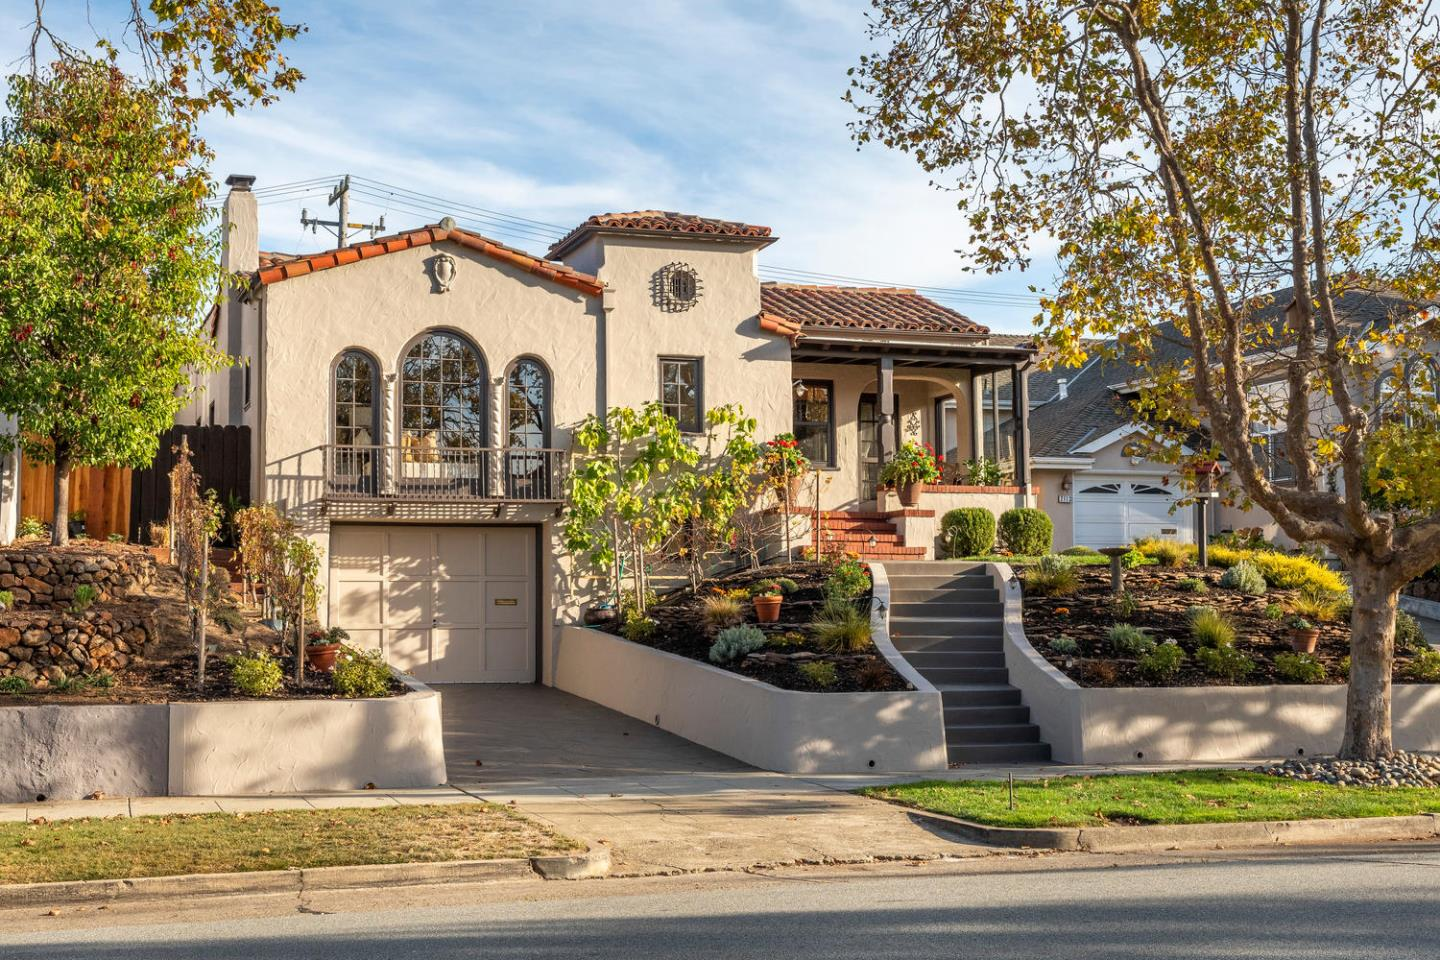 2109 Hillside DR, Burlingame, California